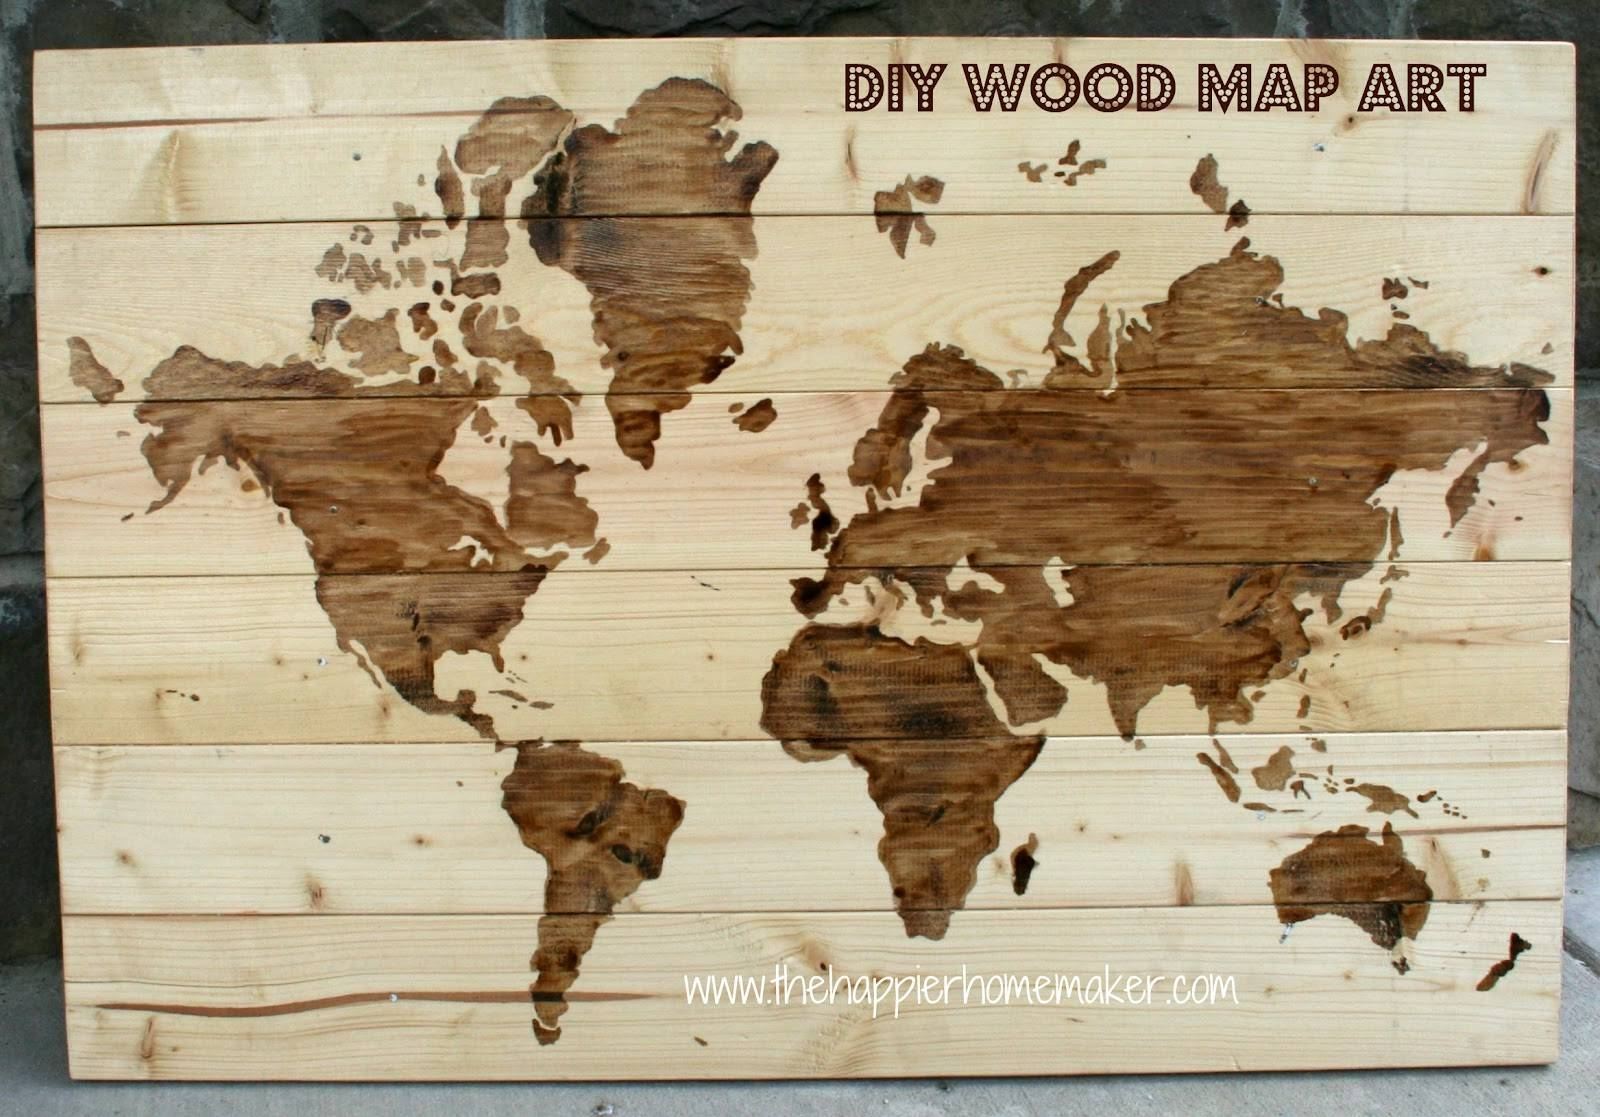 Diy Wooden World Map Art | The Happier Homemaker Regarding 2017 World Map Wood Wall Art (View 6 of 20)